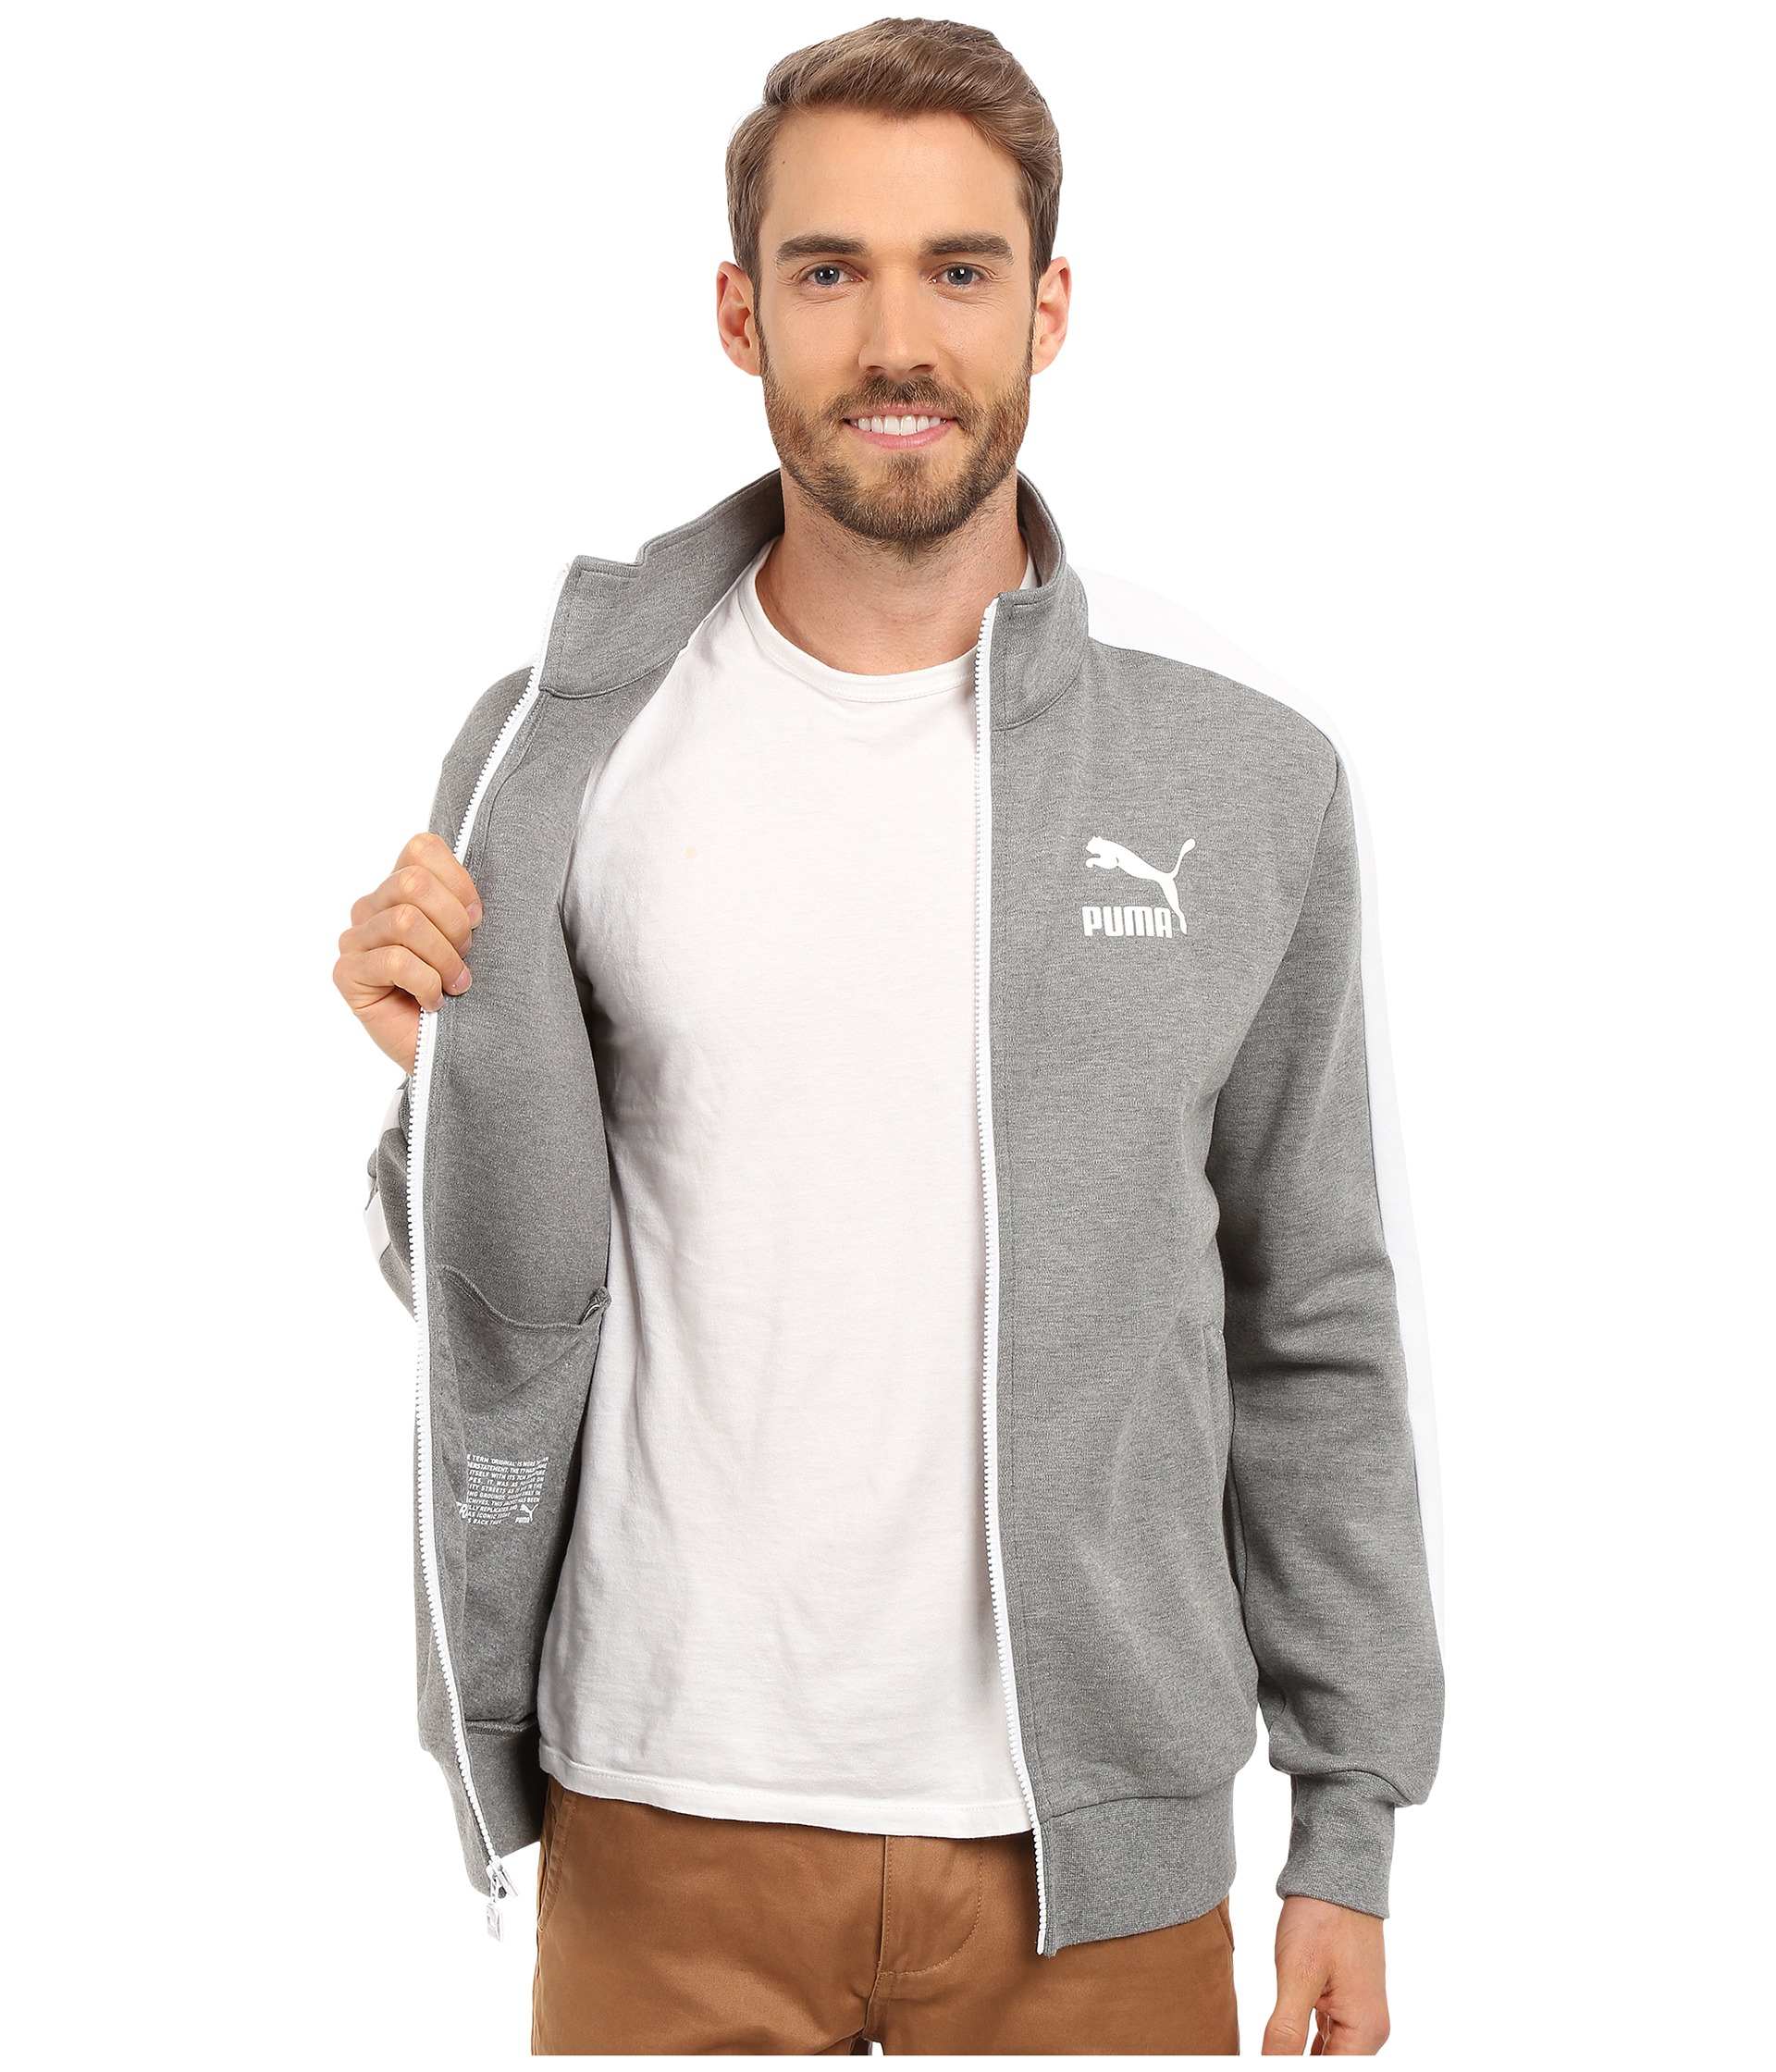 98f7452a1b2df Men's Gray Archive T7 Track Jacket